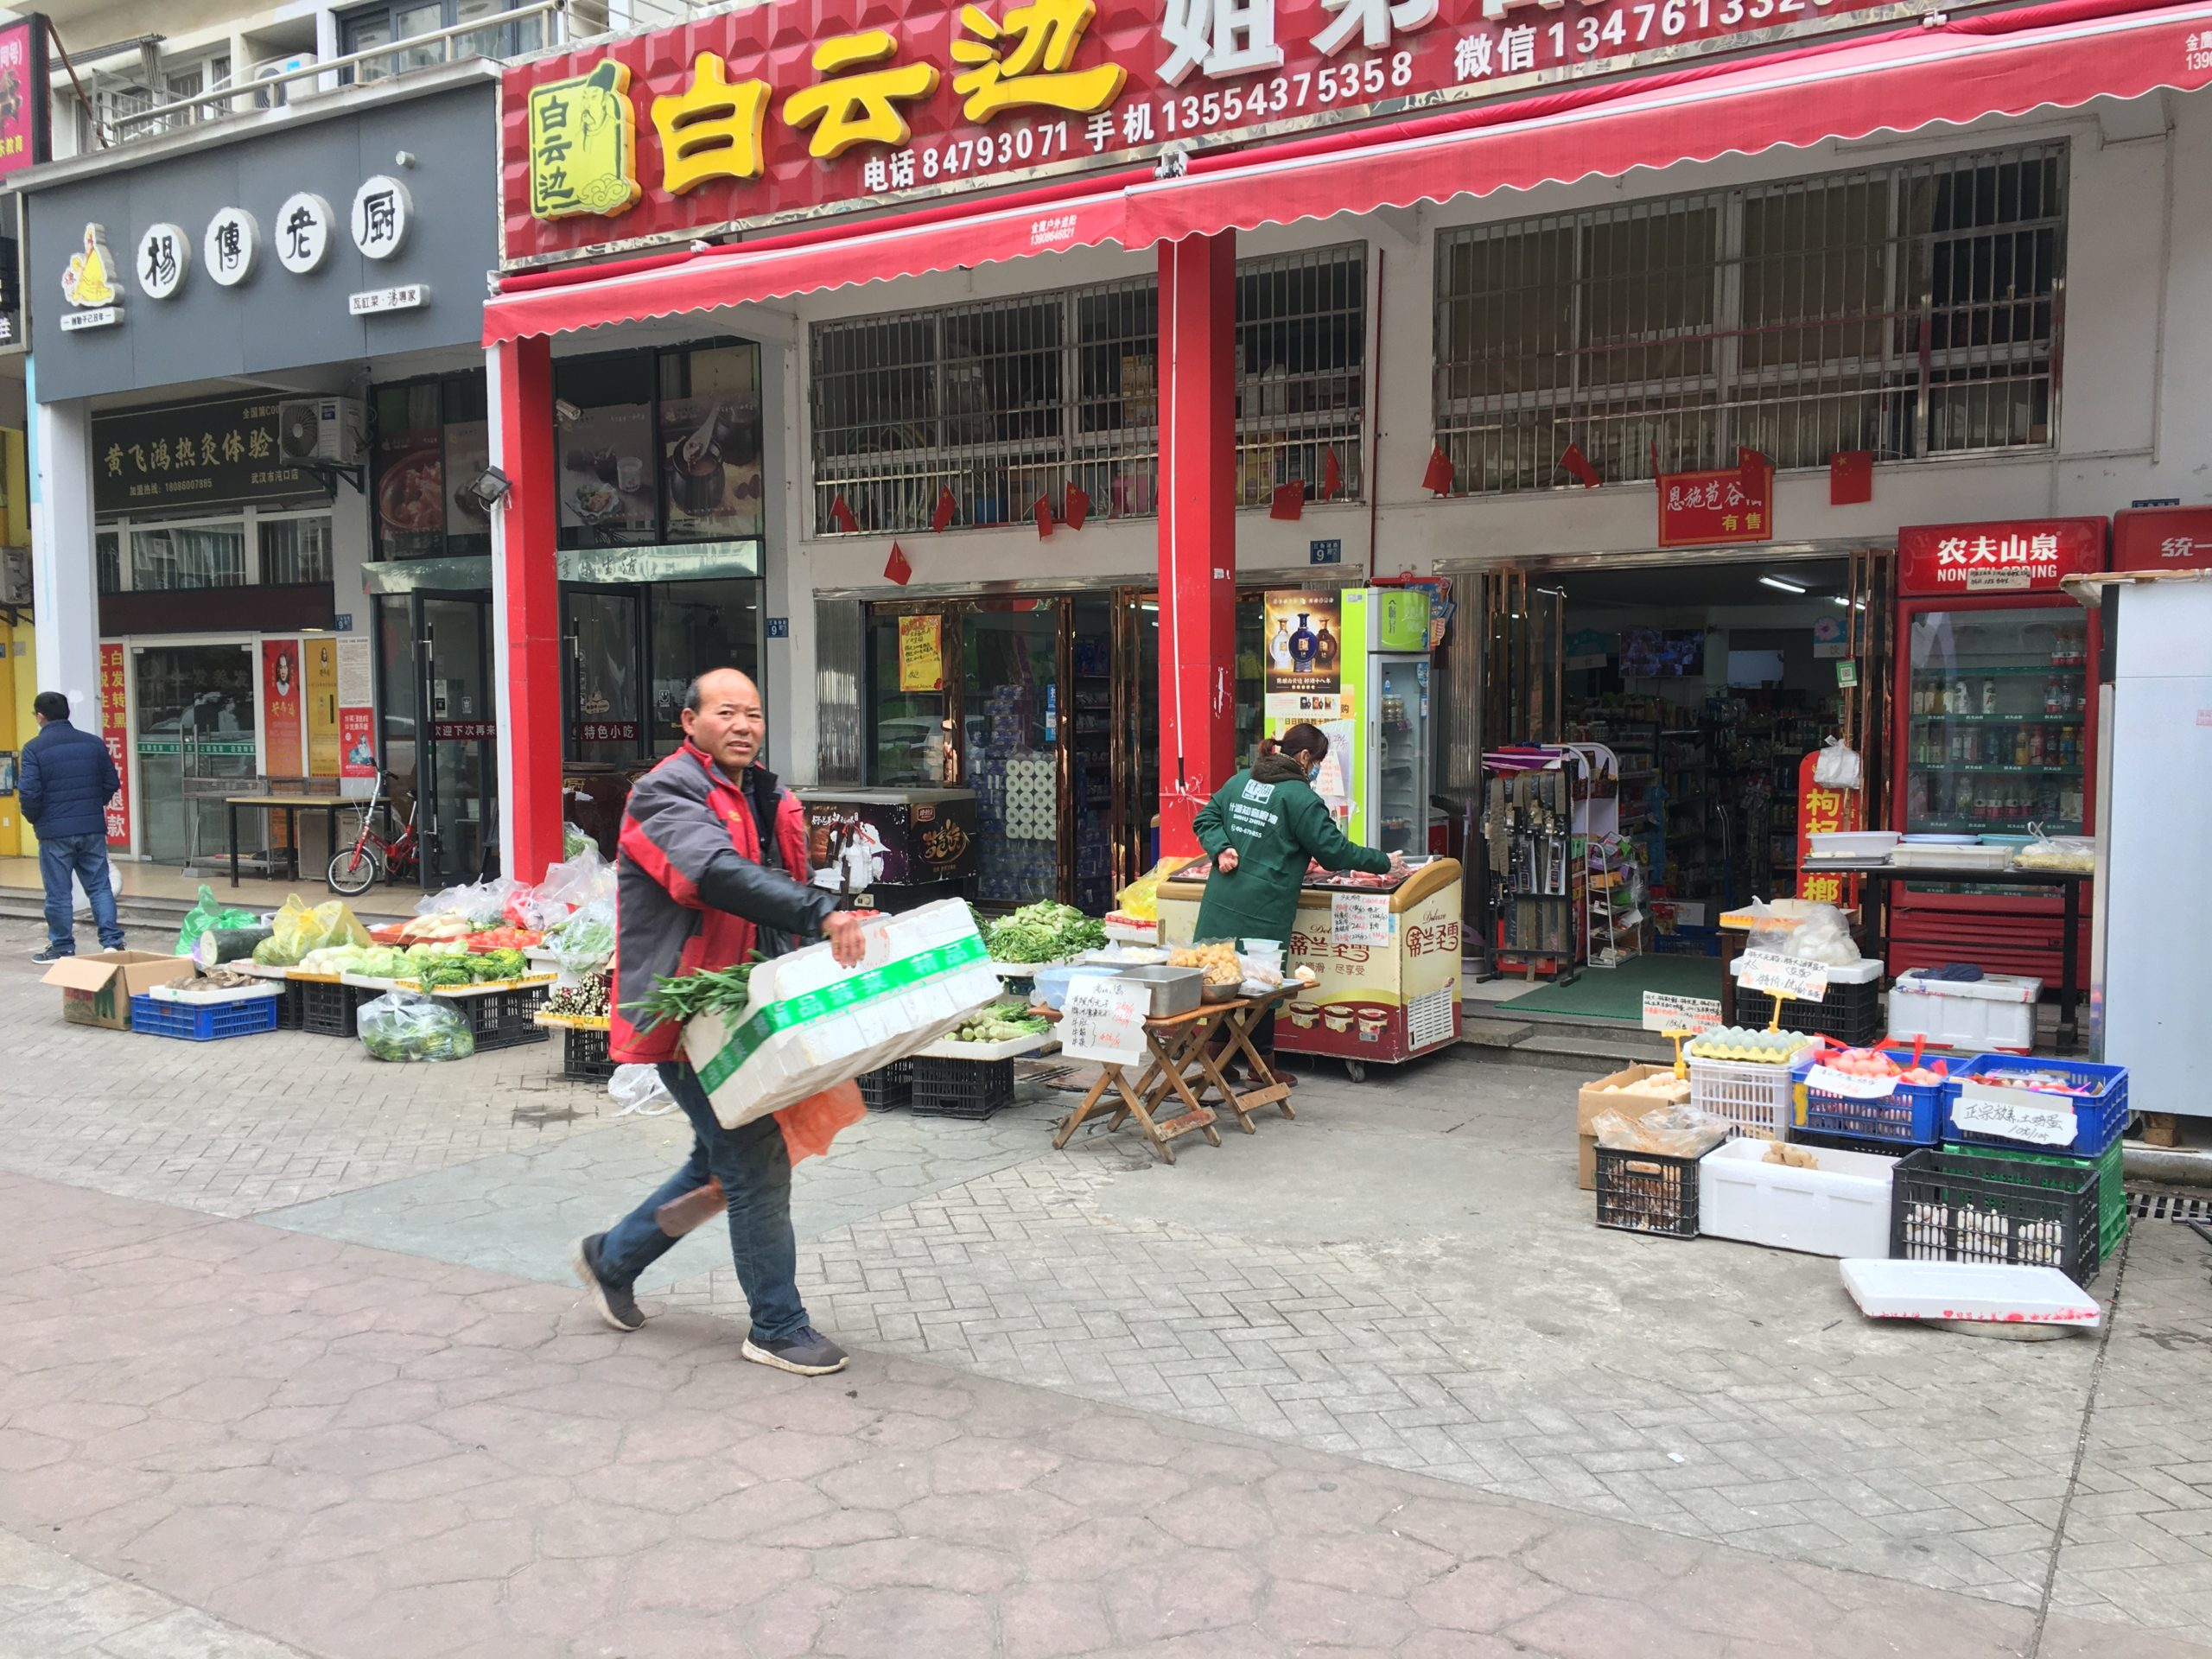 Man carrying a box past shops.